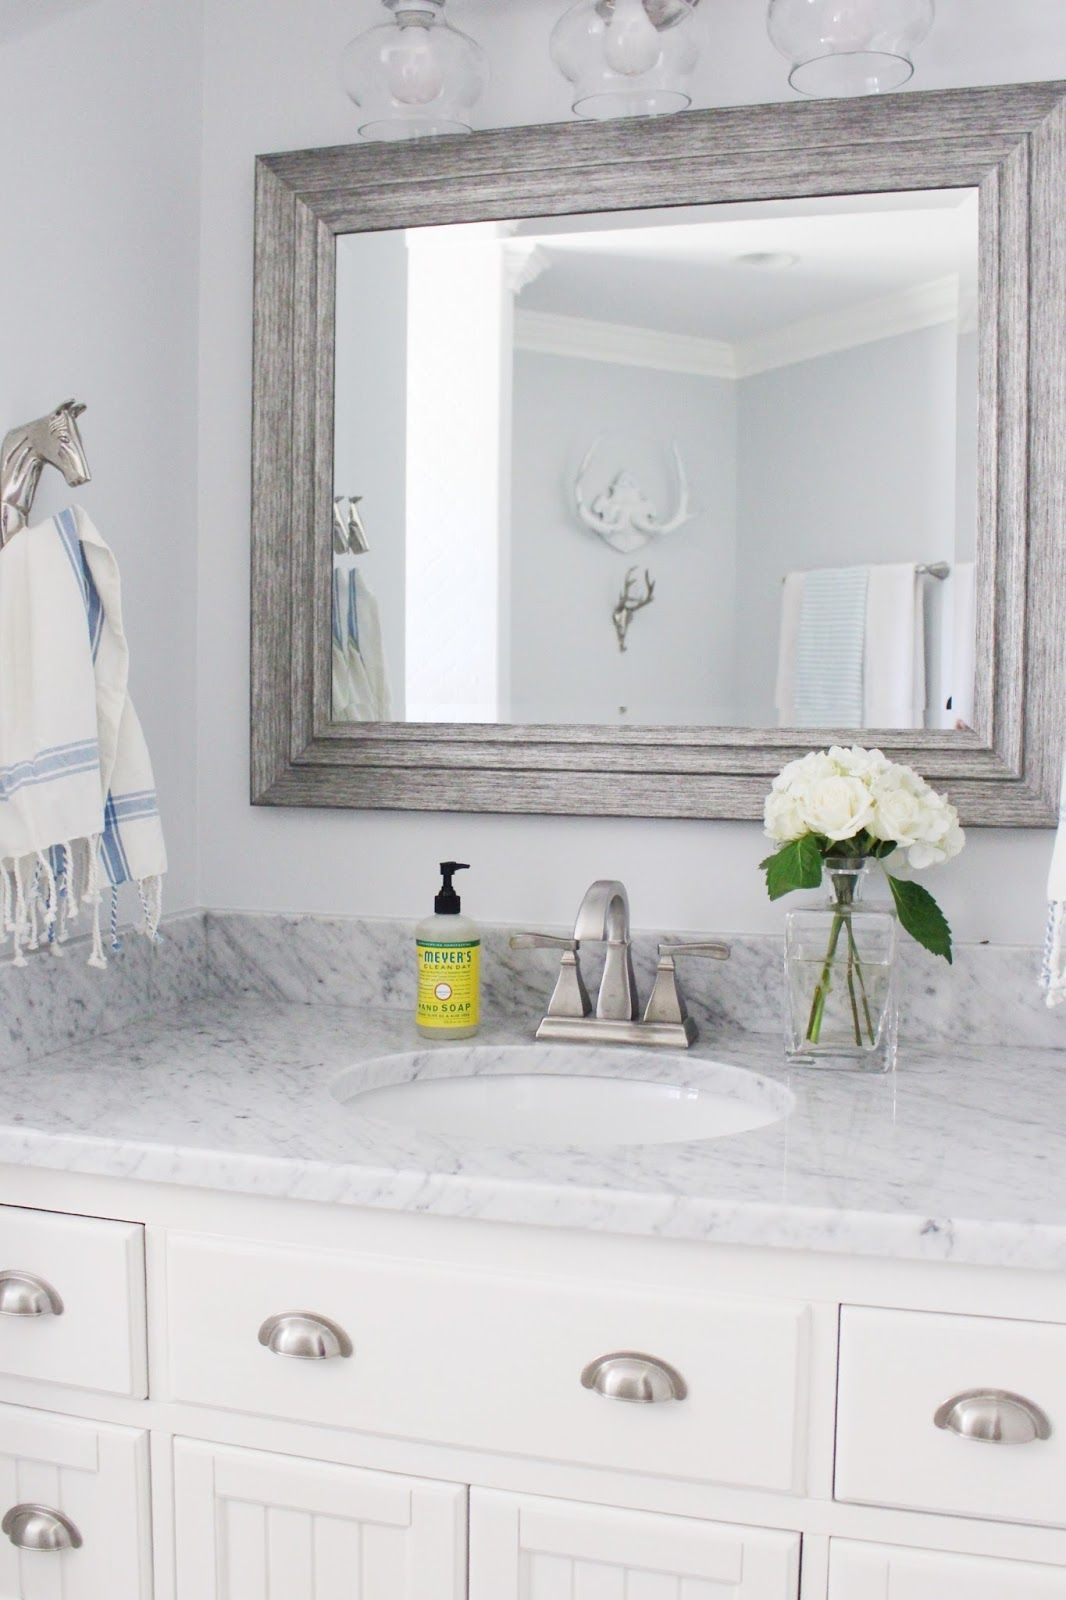 Renovation Reveal: The Baby and Guest Bath | Guest bath, Lifestyle ...